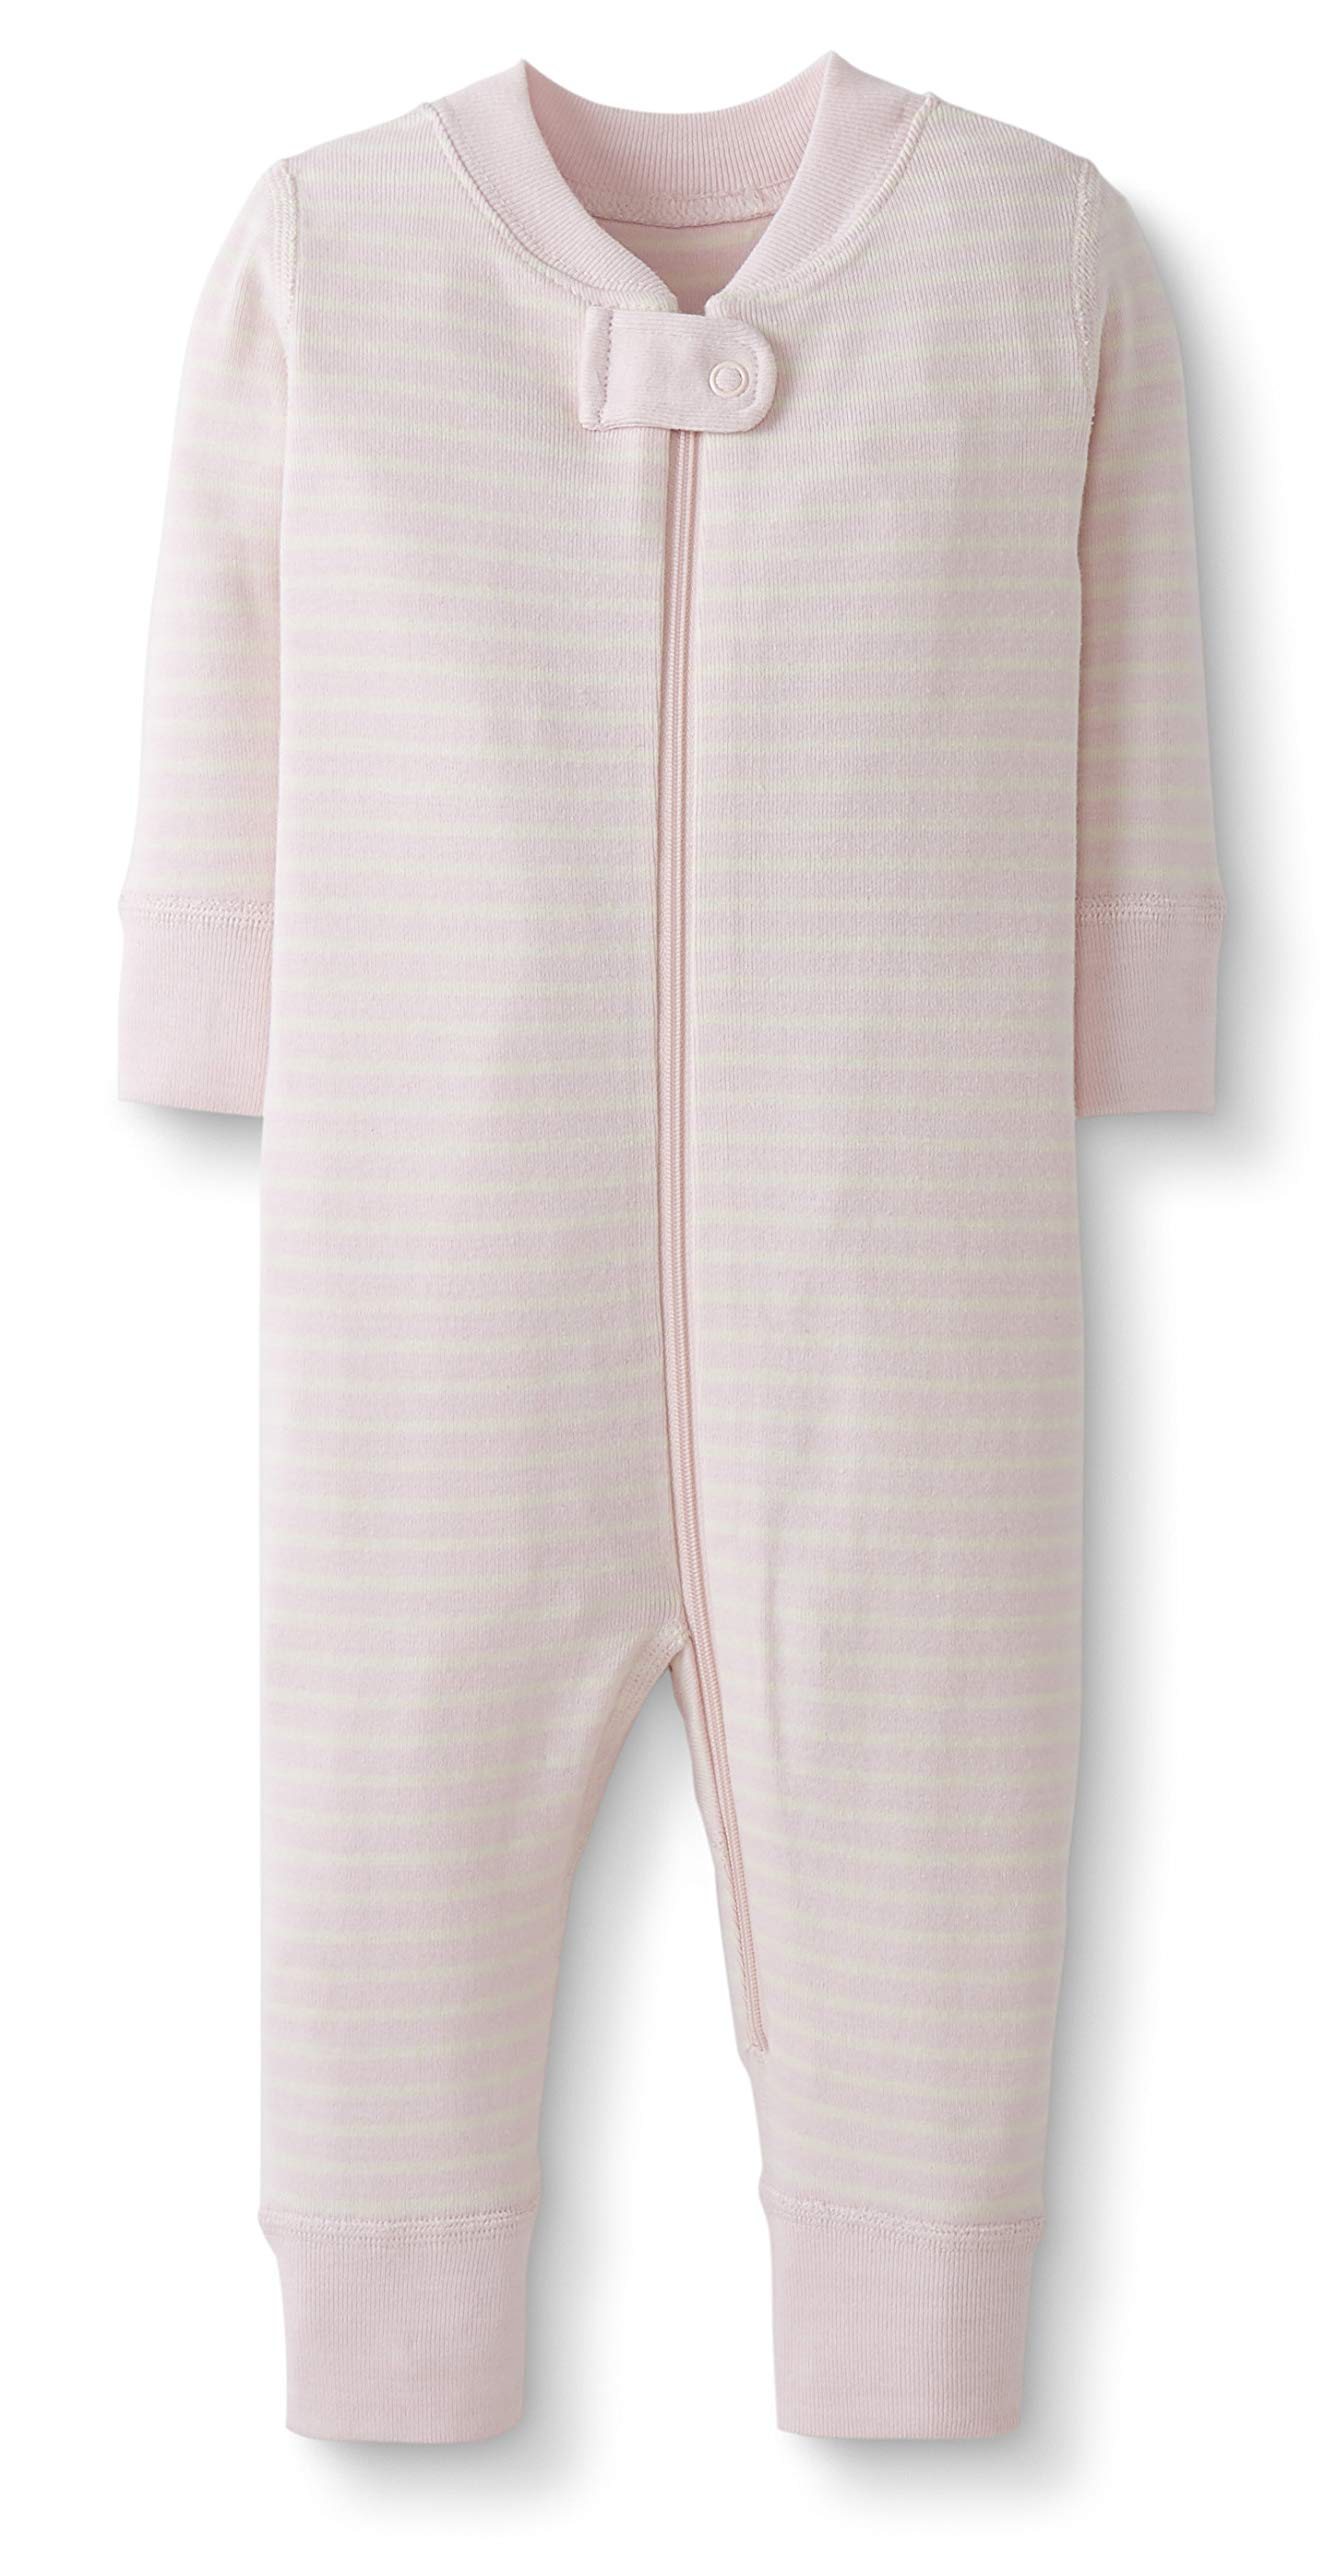 Moon and Back by Hanna Andersson Baby/Toddler One-Piece Organic Cotton Footless Pajamas, Pink Stripe, 18-24 months